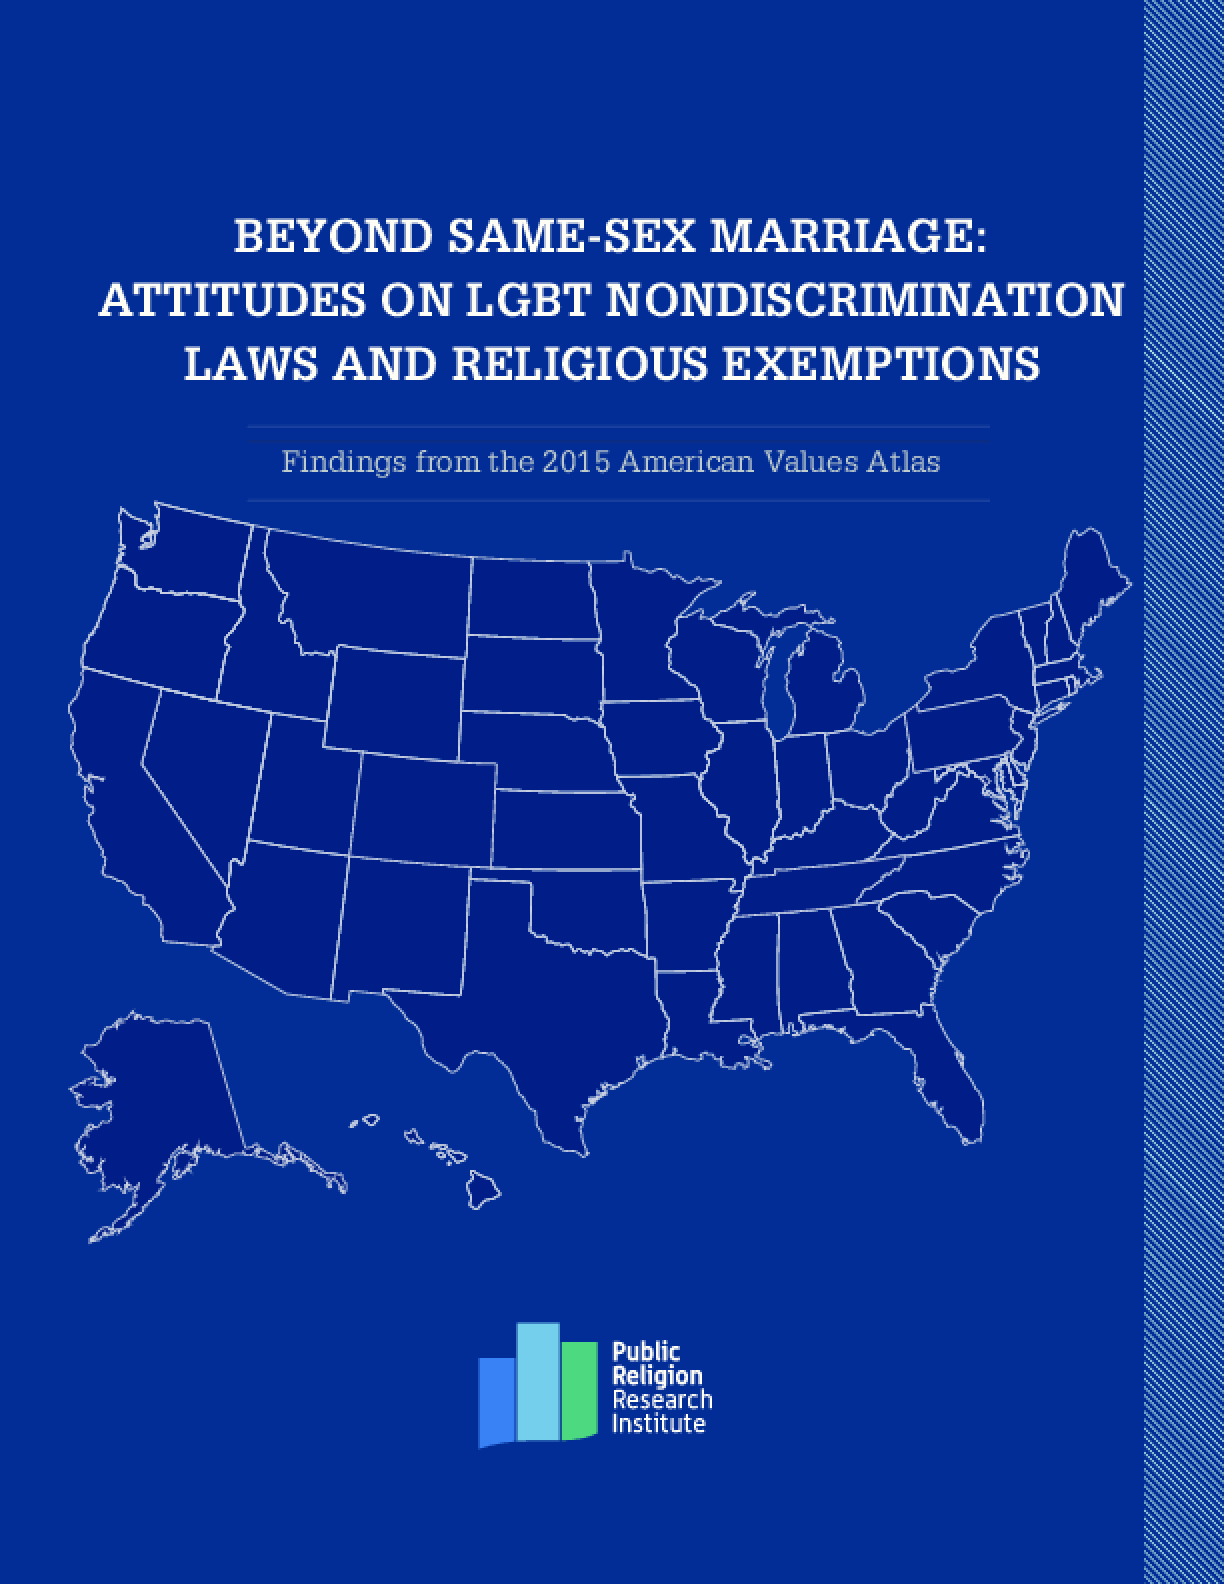 Beyond Same-Sex Marriage: Attitudes on LGBT Nondiscrimination Laws and Religious Exemptions - Finding from the 2015 American Values Atlas